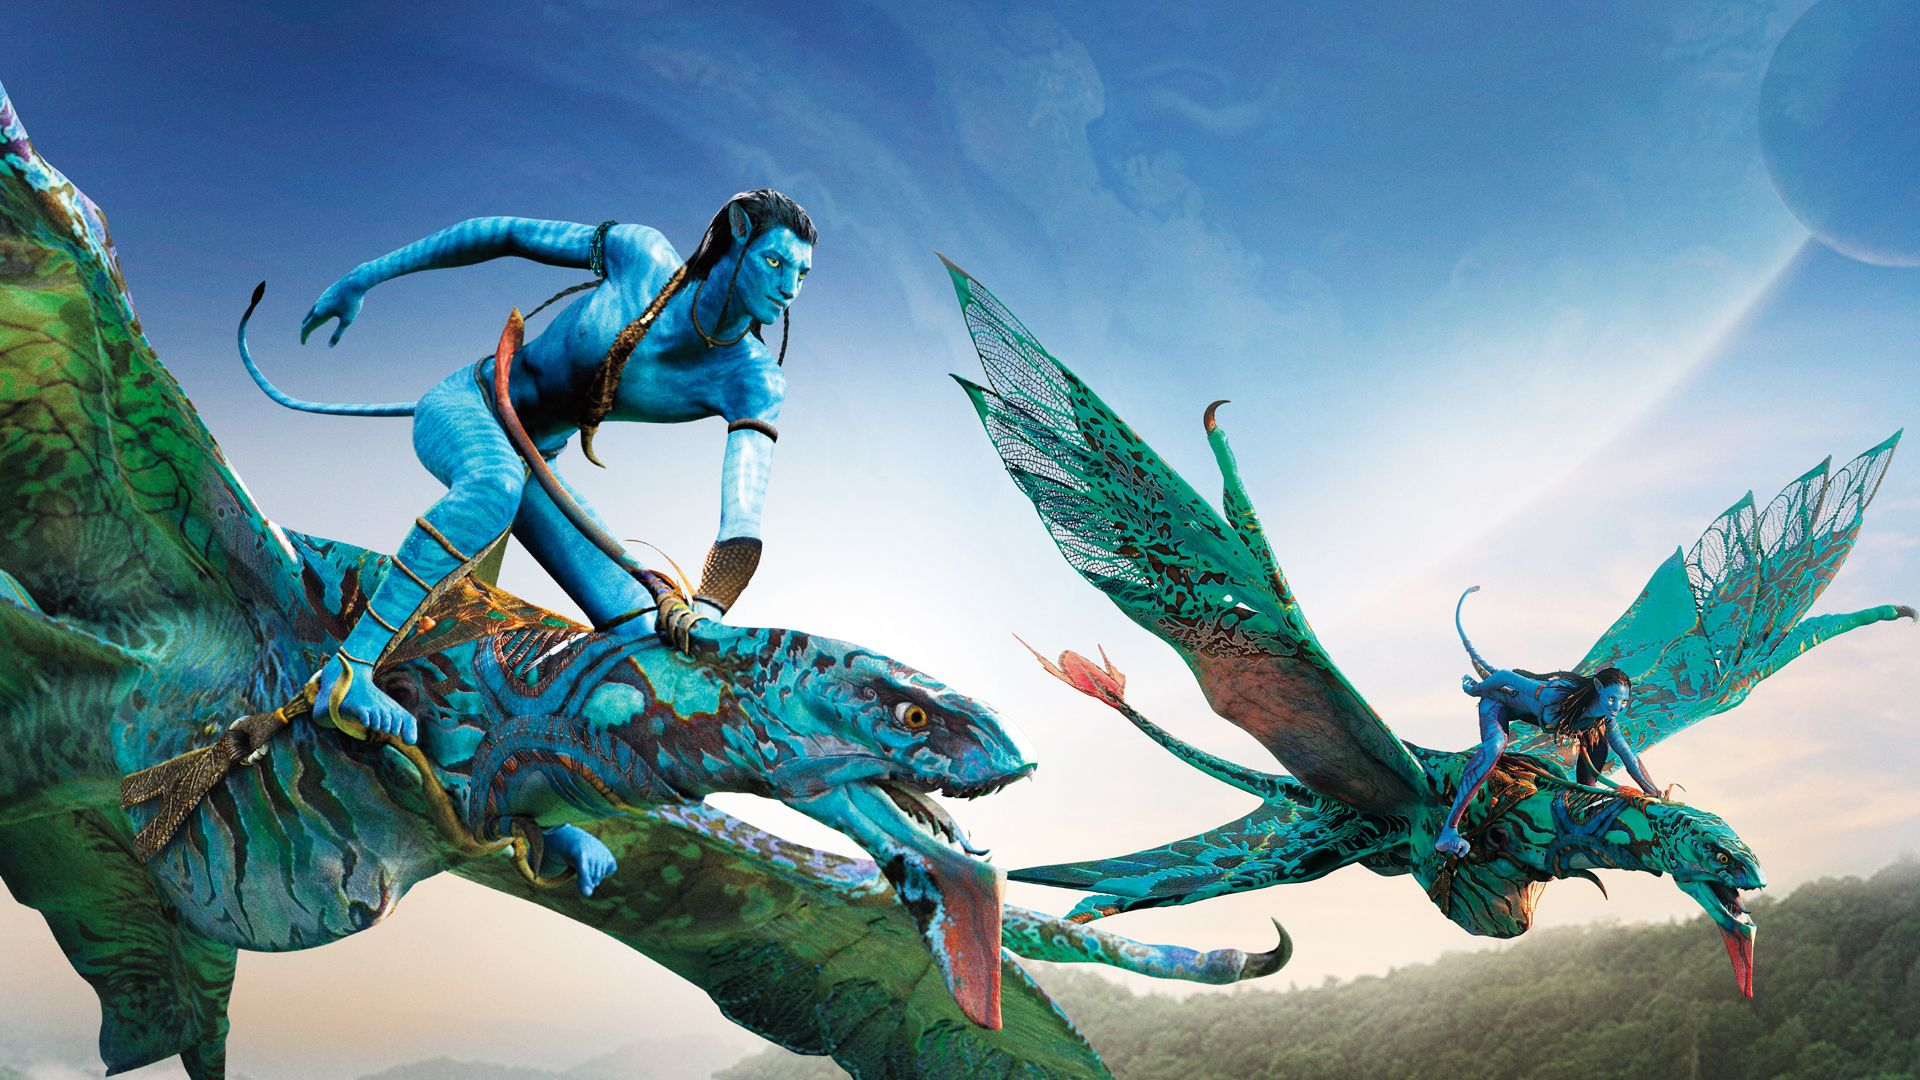 Avatar HD Wallpapers Find Best Latest For Your PC Desktop Background Mobile Phones